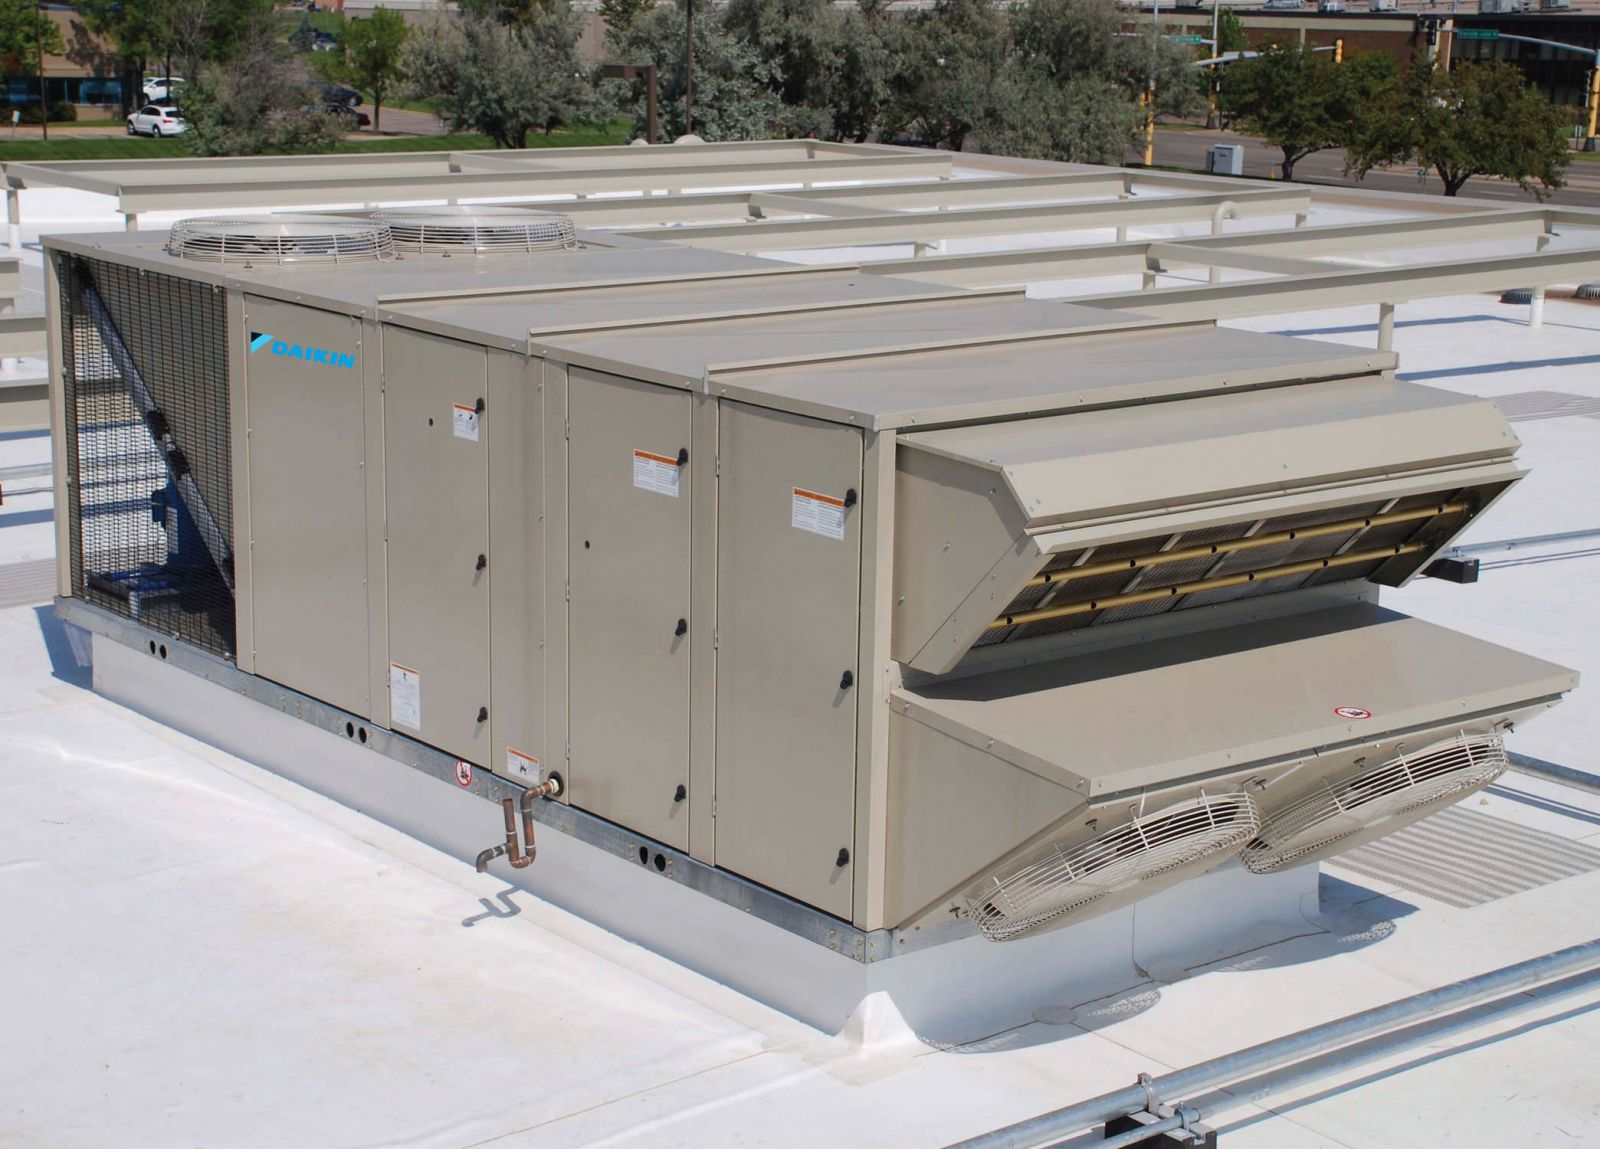 #4E6076 Commercial Air Conditioners Rooftop Packages Best 6233 Rooftop Package Unit photos with 1600x1149 px on helpvideos.info - Air Conditioners, Air Coolers and more